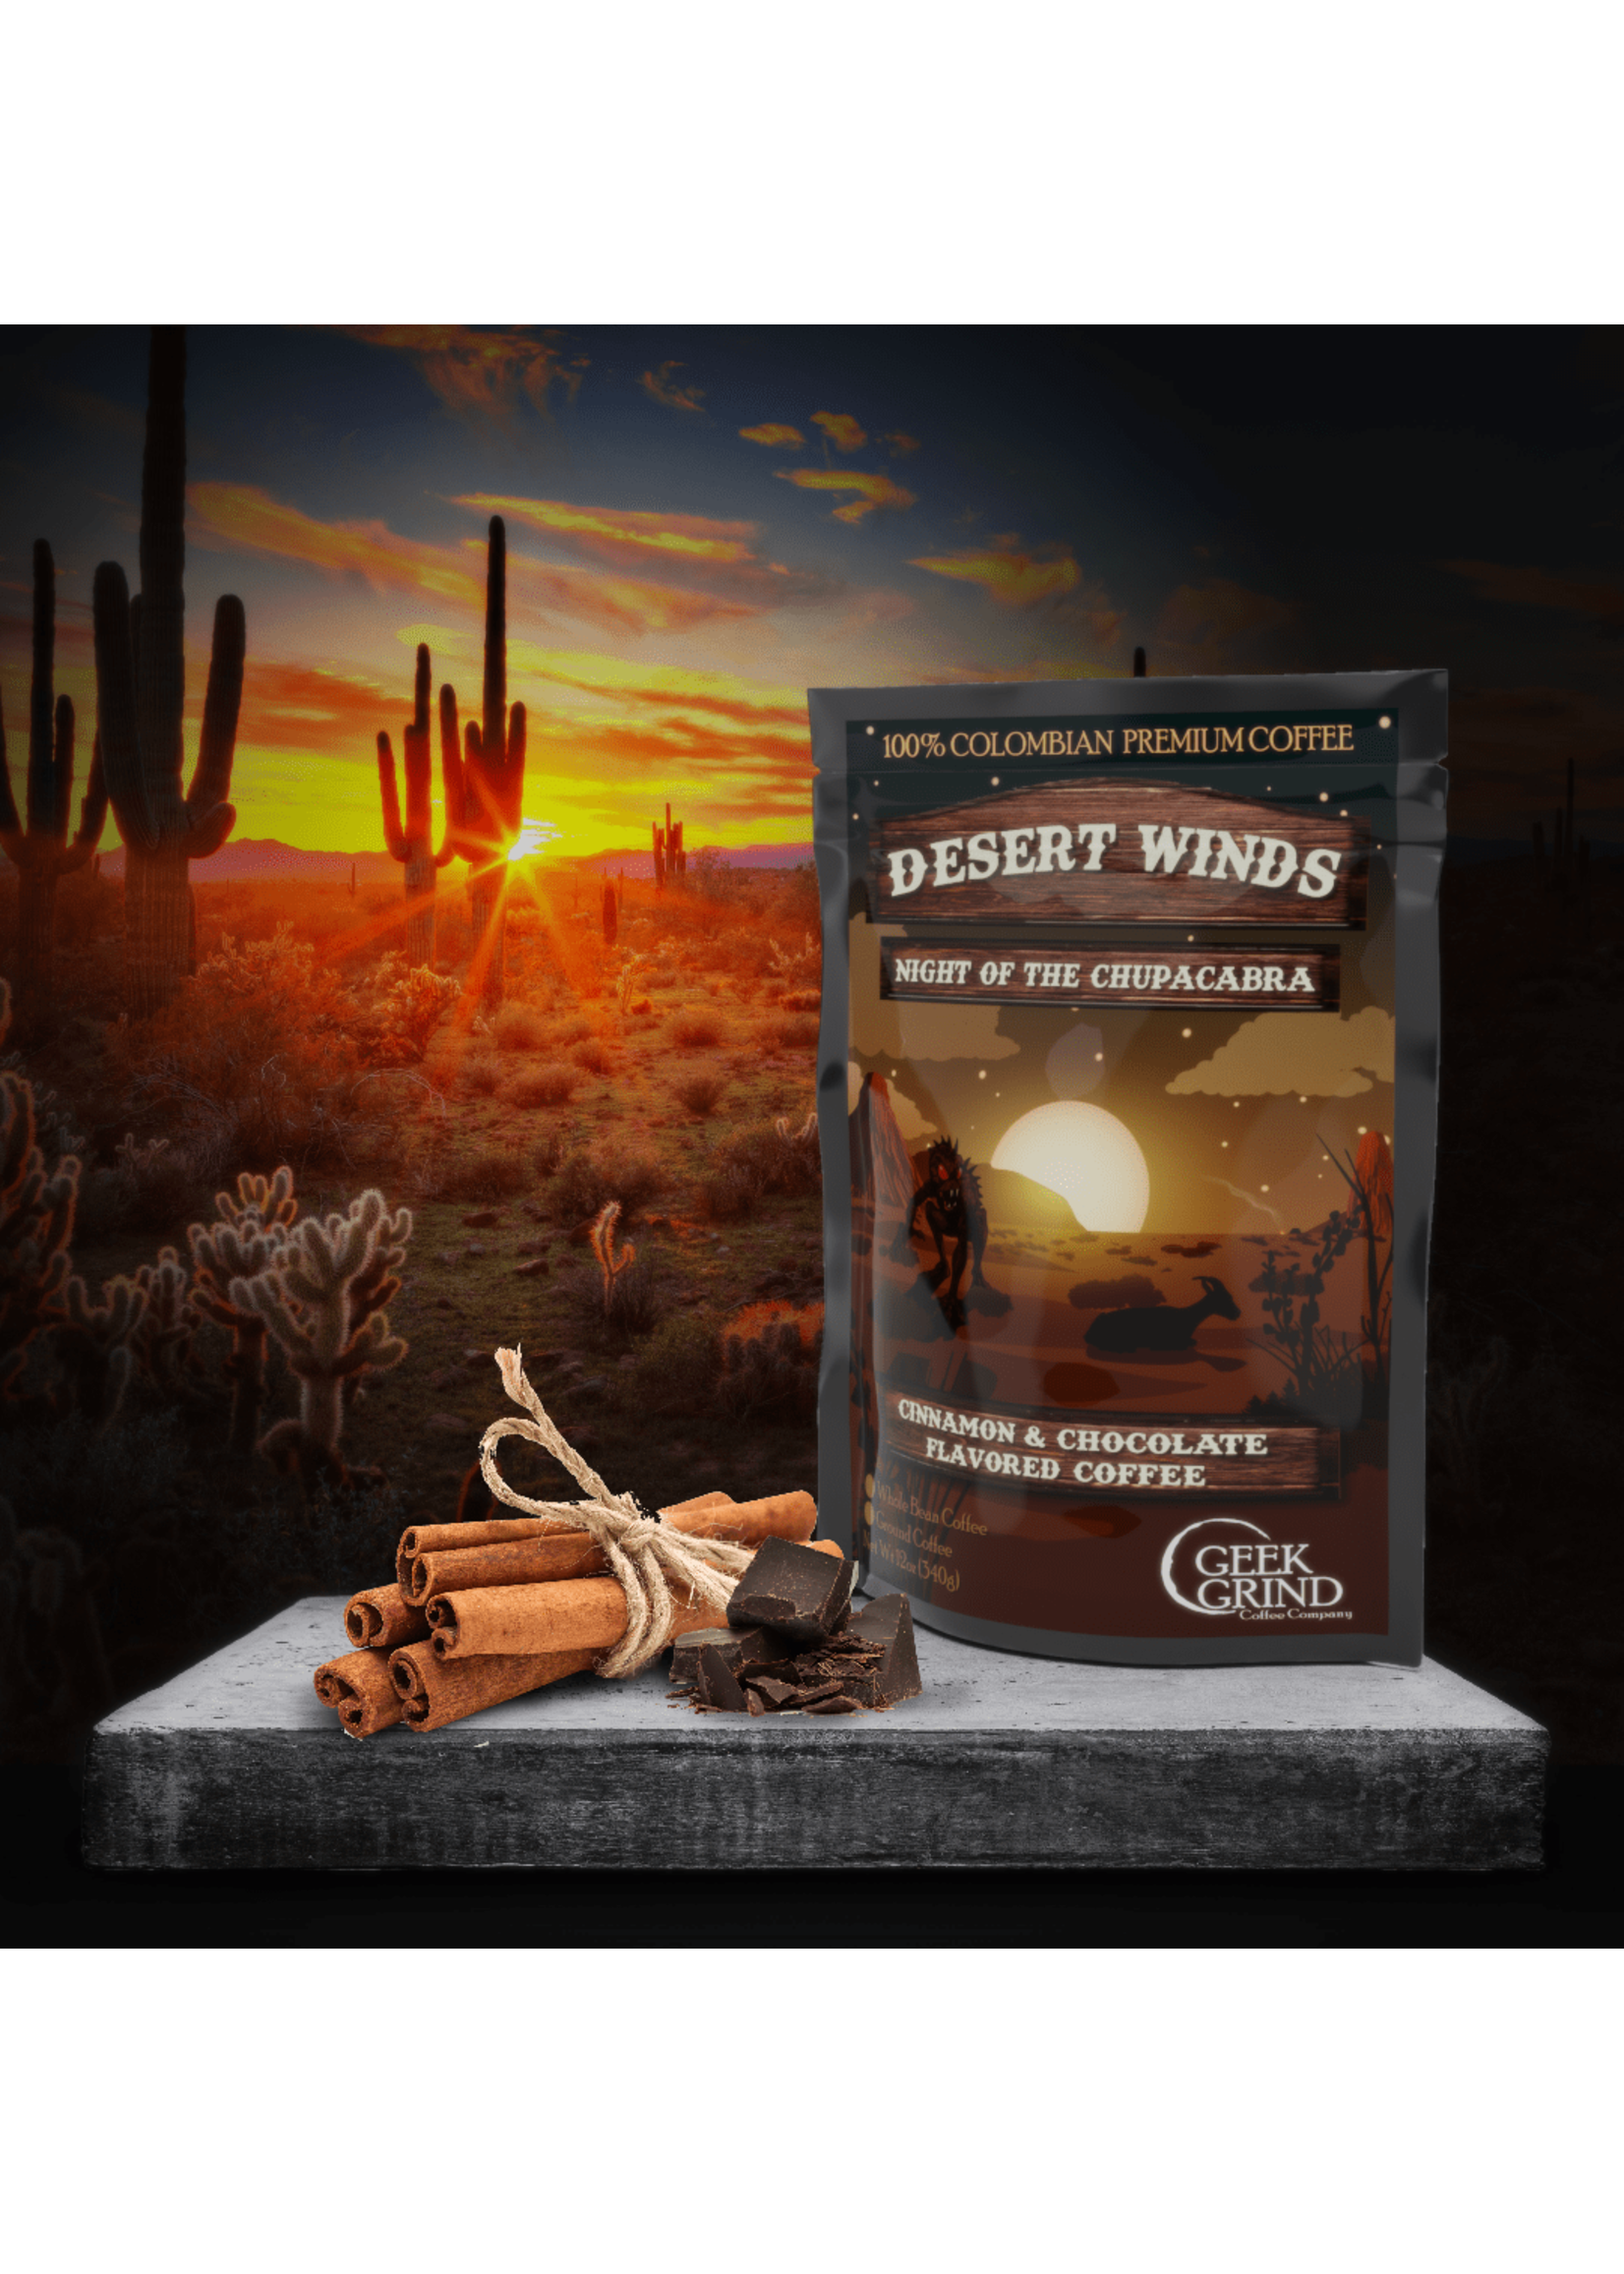 Geek Grind Desert Winds - Night of the Chupacabra - Cinnamon & Chocolate Flavored Coffee - 12 oz. Whole Bean